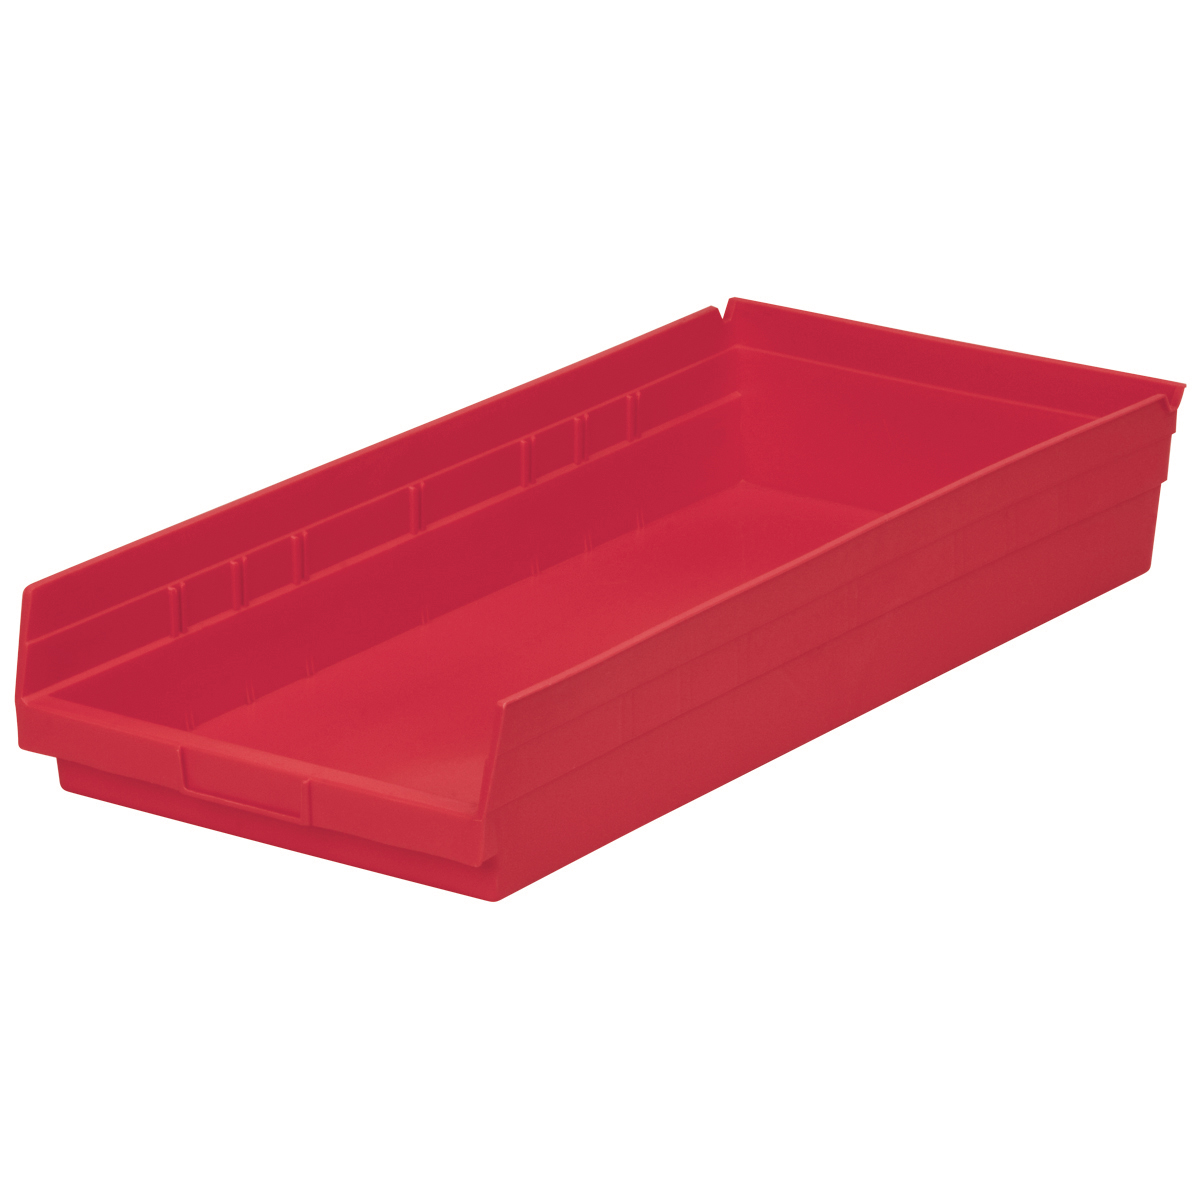 Shelf Bin 23-5/8 x 11-1/8 x 4, Red (30174RED).  This item sold in carton quantities of 6.